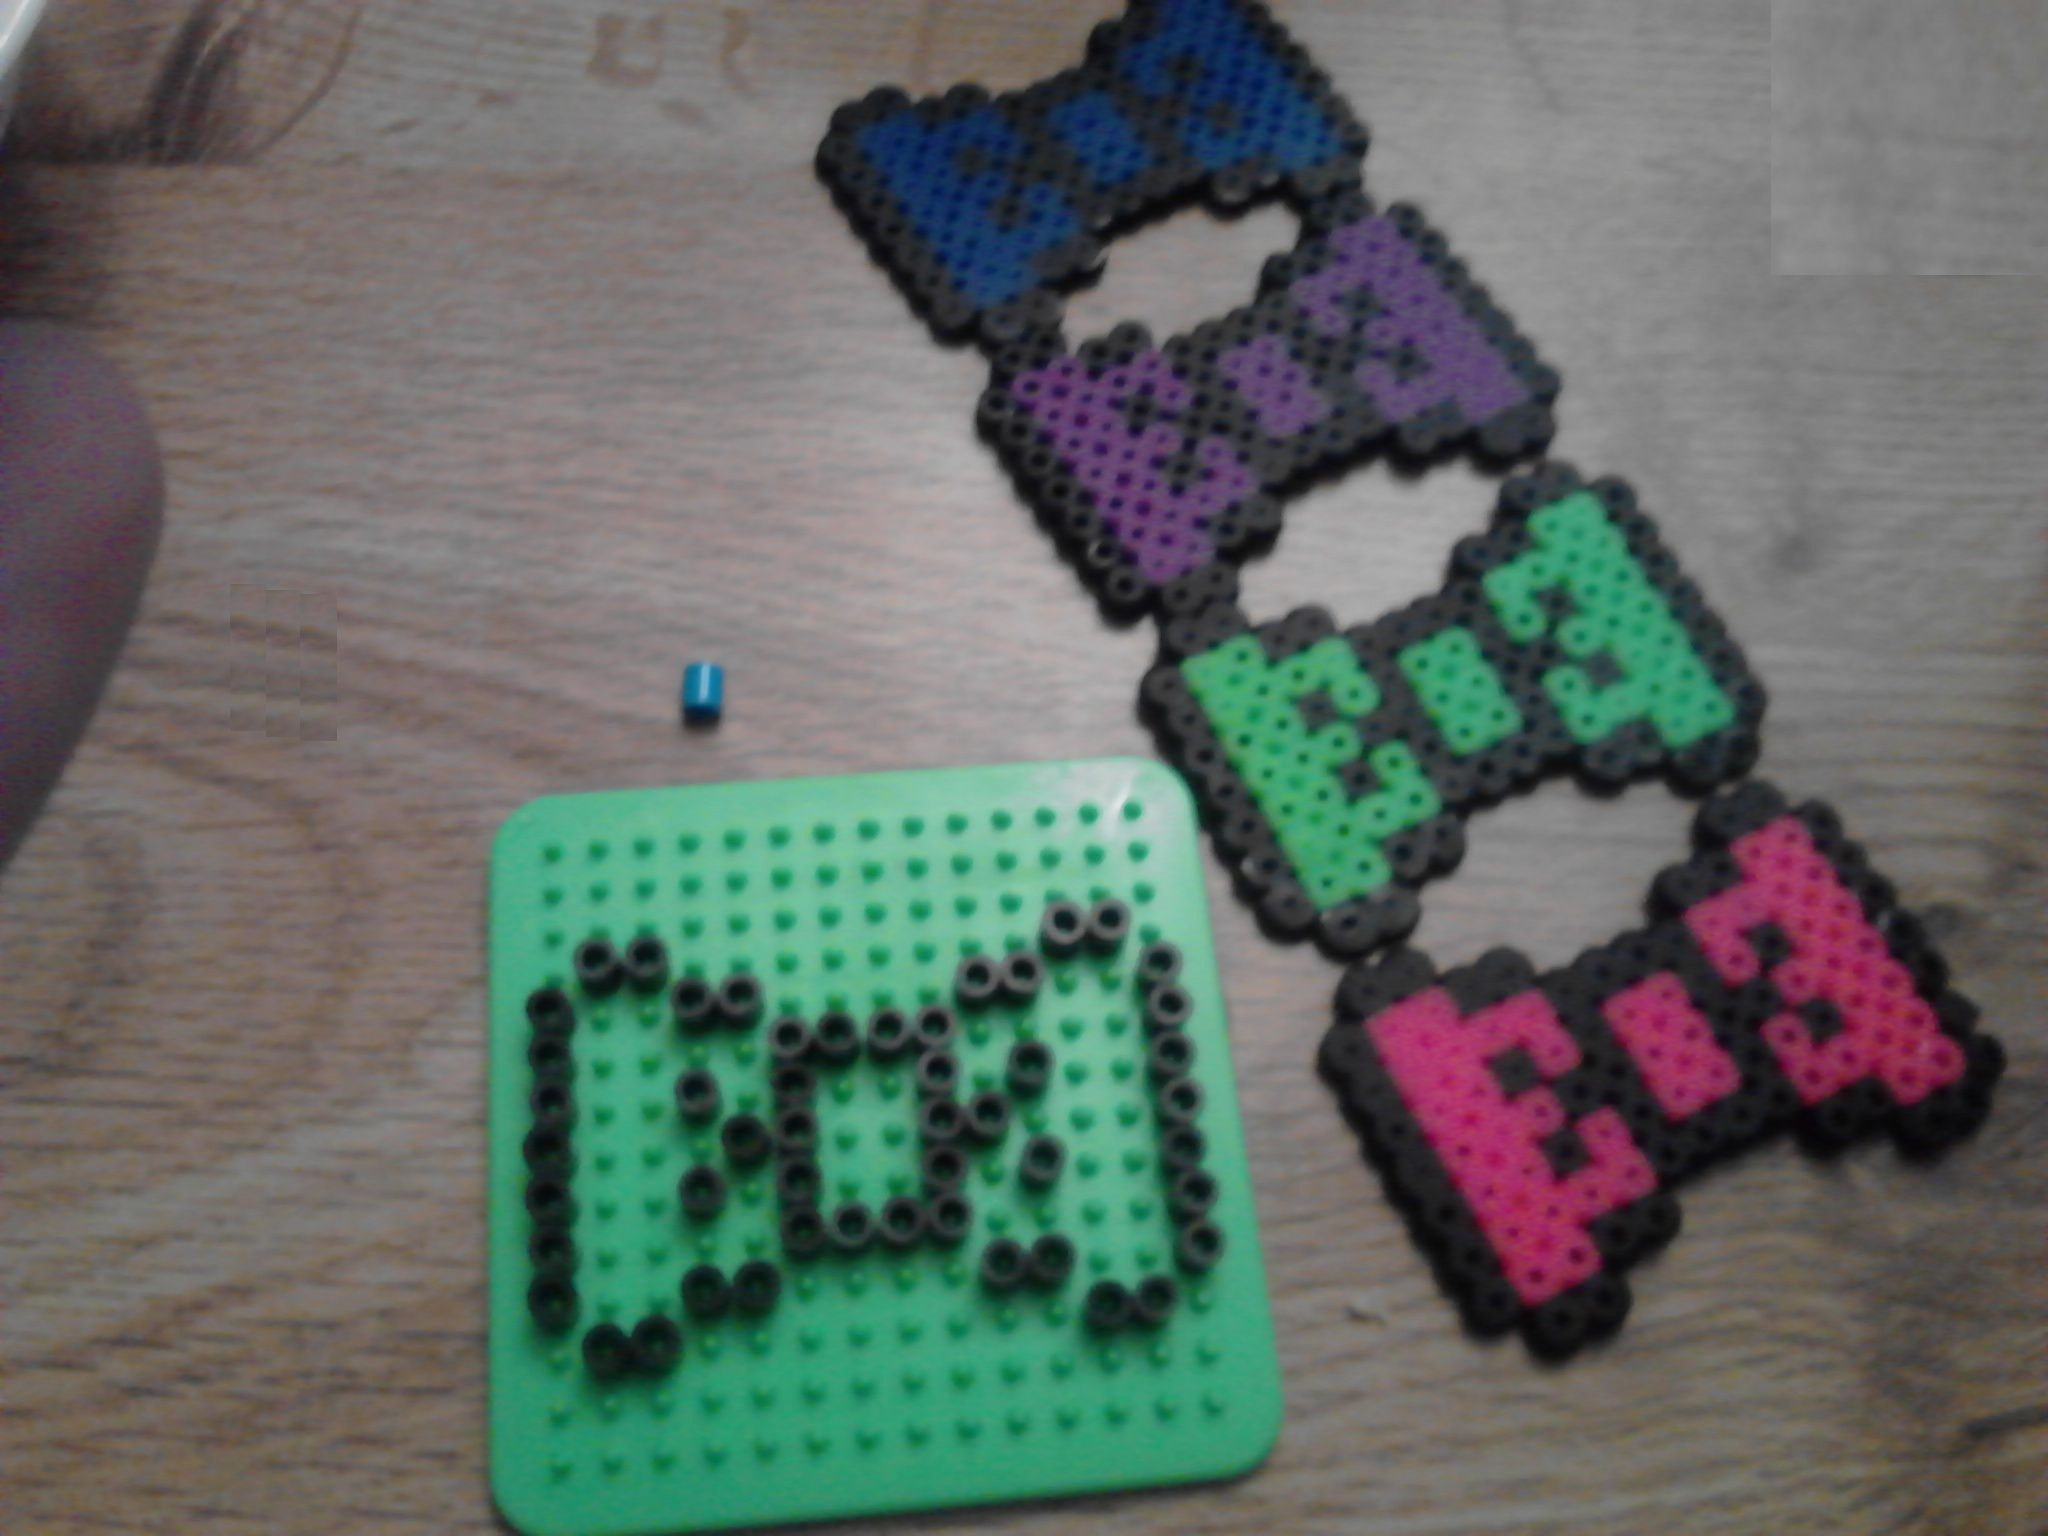 8 Bit Bows Made With Perler Beads On A 14x14 Square Grid Hot Glue